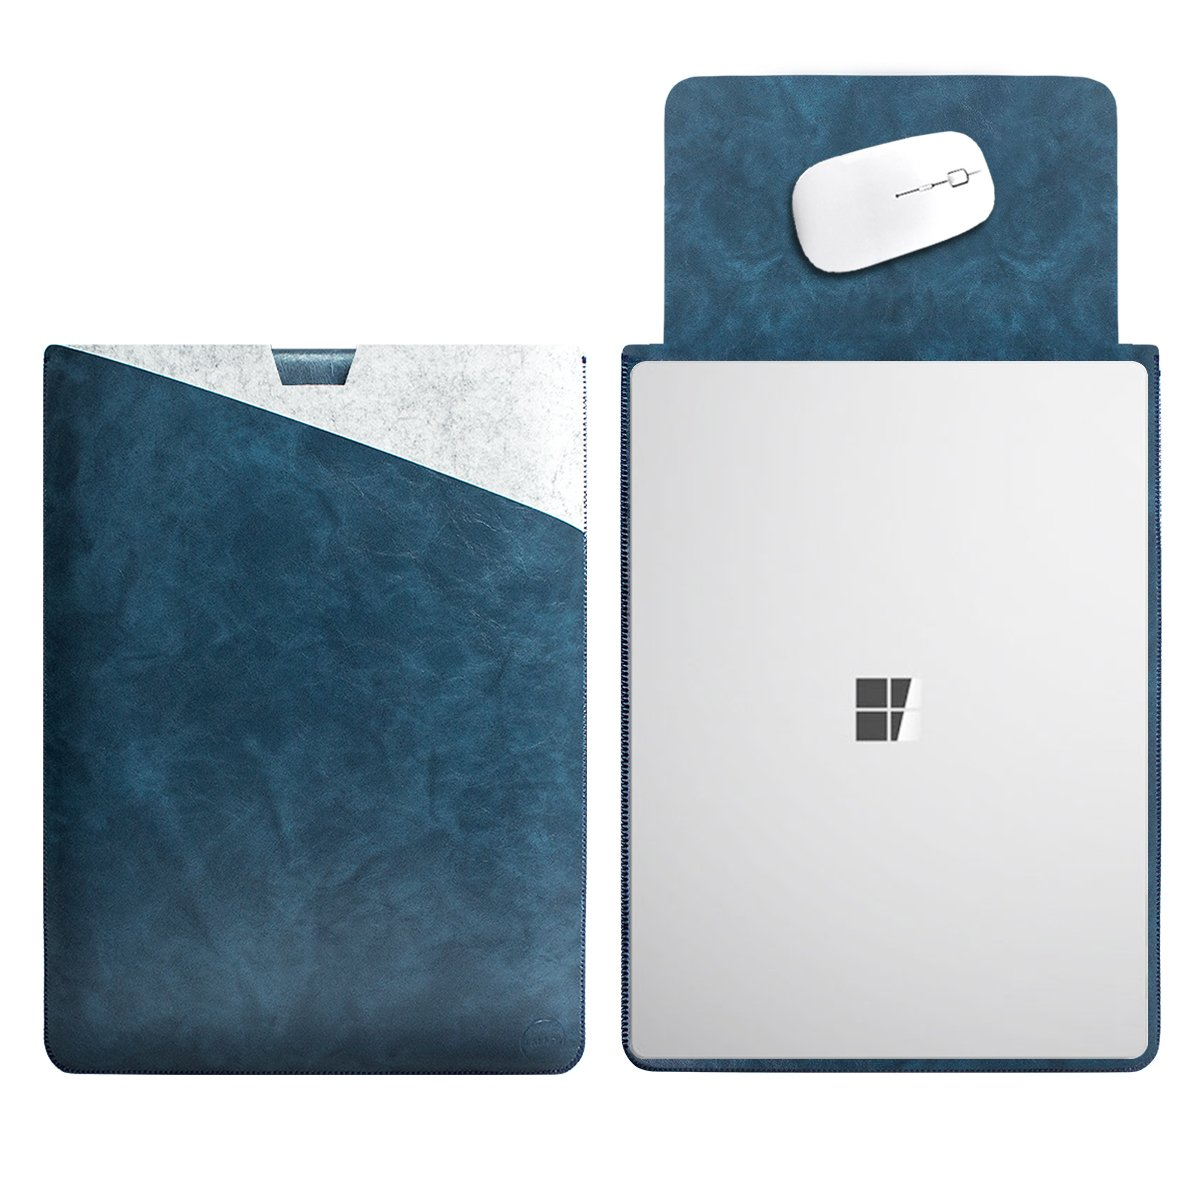 WALNEW 13.5'' Sleeve for Microsoft Surface Laptop 13.5 Inch Surface Laptop 2 Protective Soft Sleeve Case Cover Bag with Safe Interior and Exterior Mouse Pad, Dark Blue by WALNEW